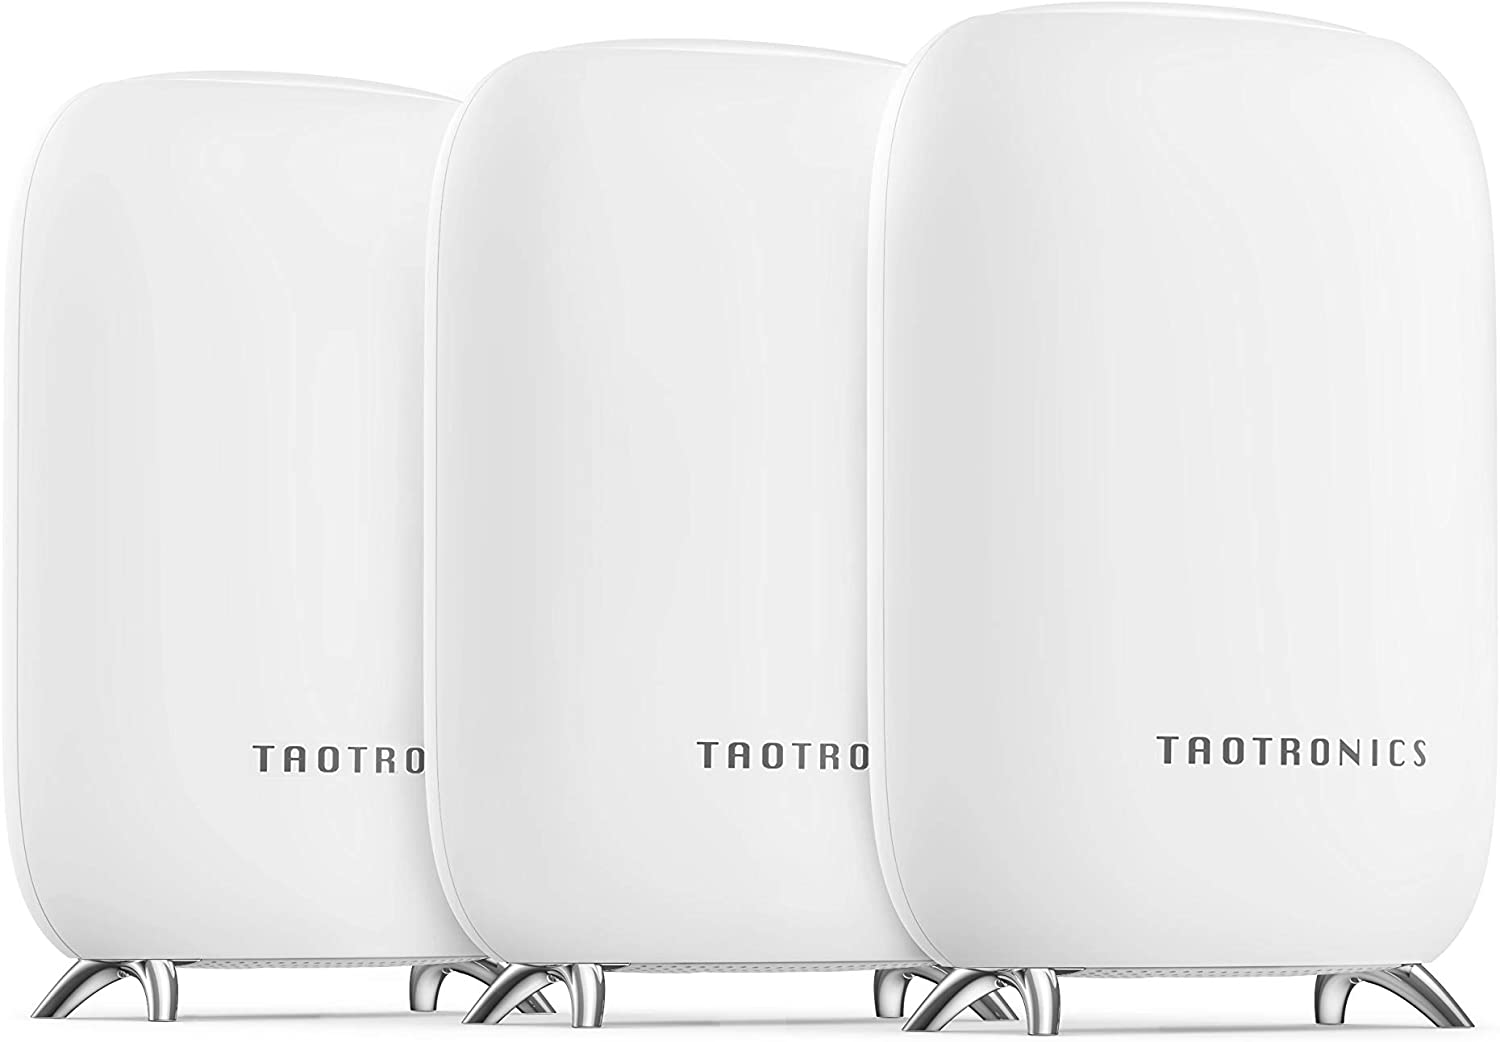 TaoTronics Mesh WiFi System, Tri-Band AC3000 3Gbps Speed 6,000 Sq. Ft Coverage Whole Home WiFi Router/Extender Replacement, 4 Gigabit Ethernet & 1 USB 3.0 Ports, Connection of up to 200 Devices-3 Pack